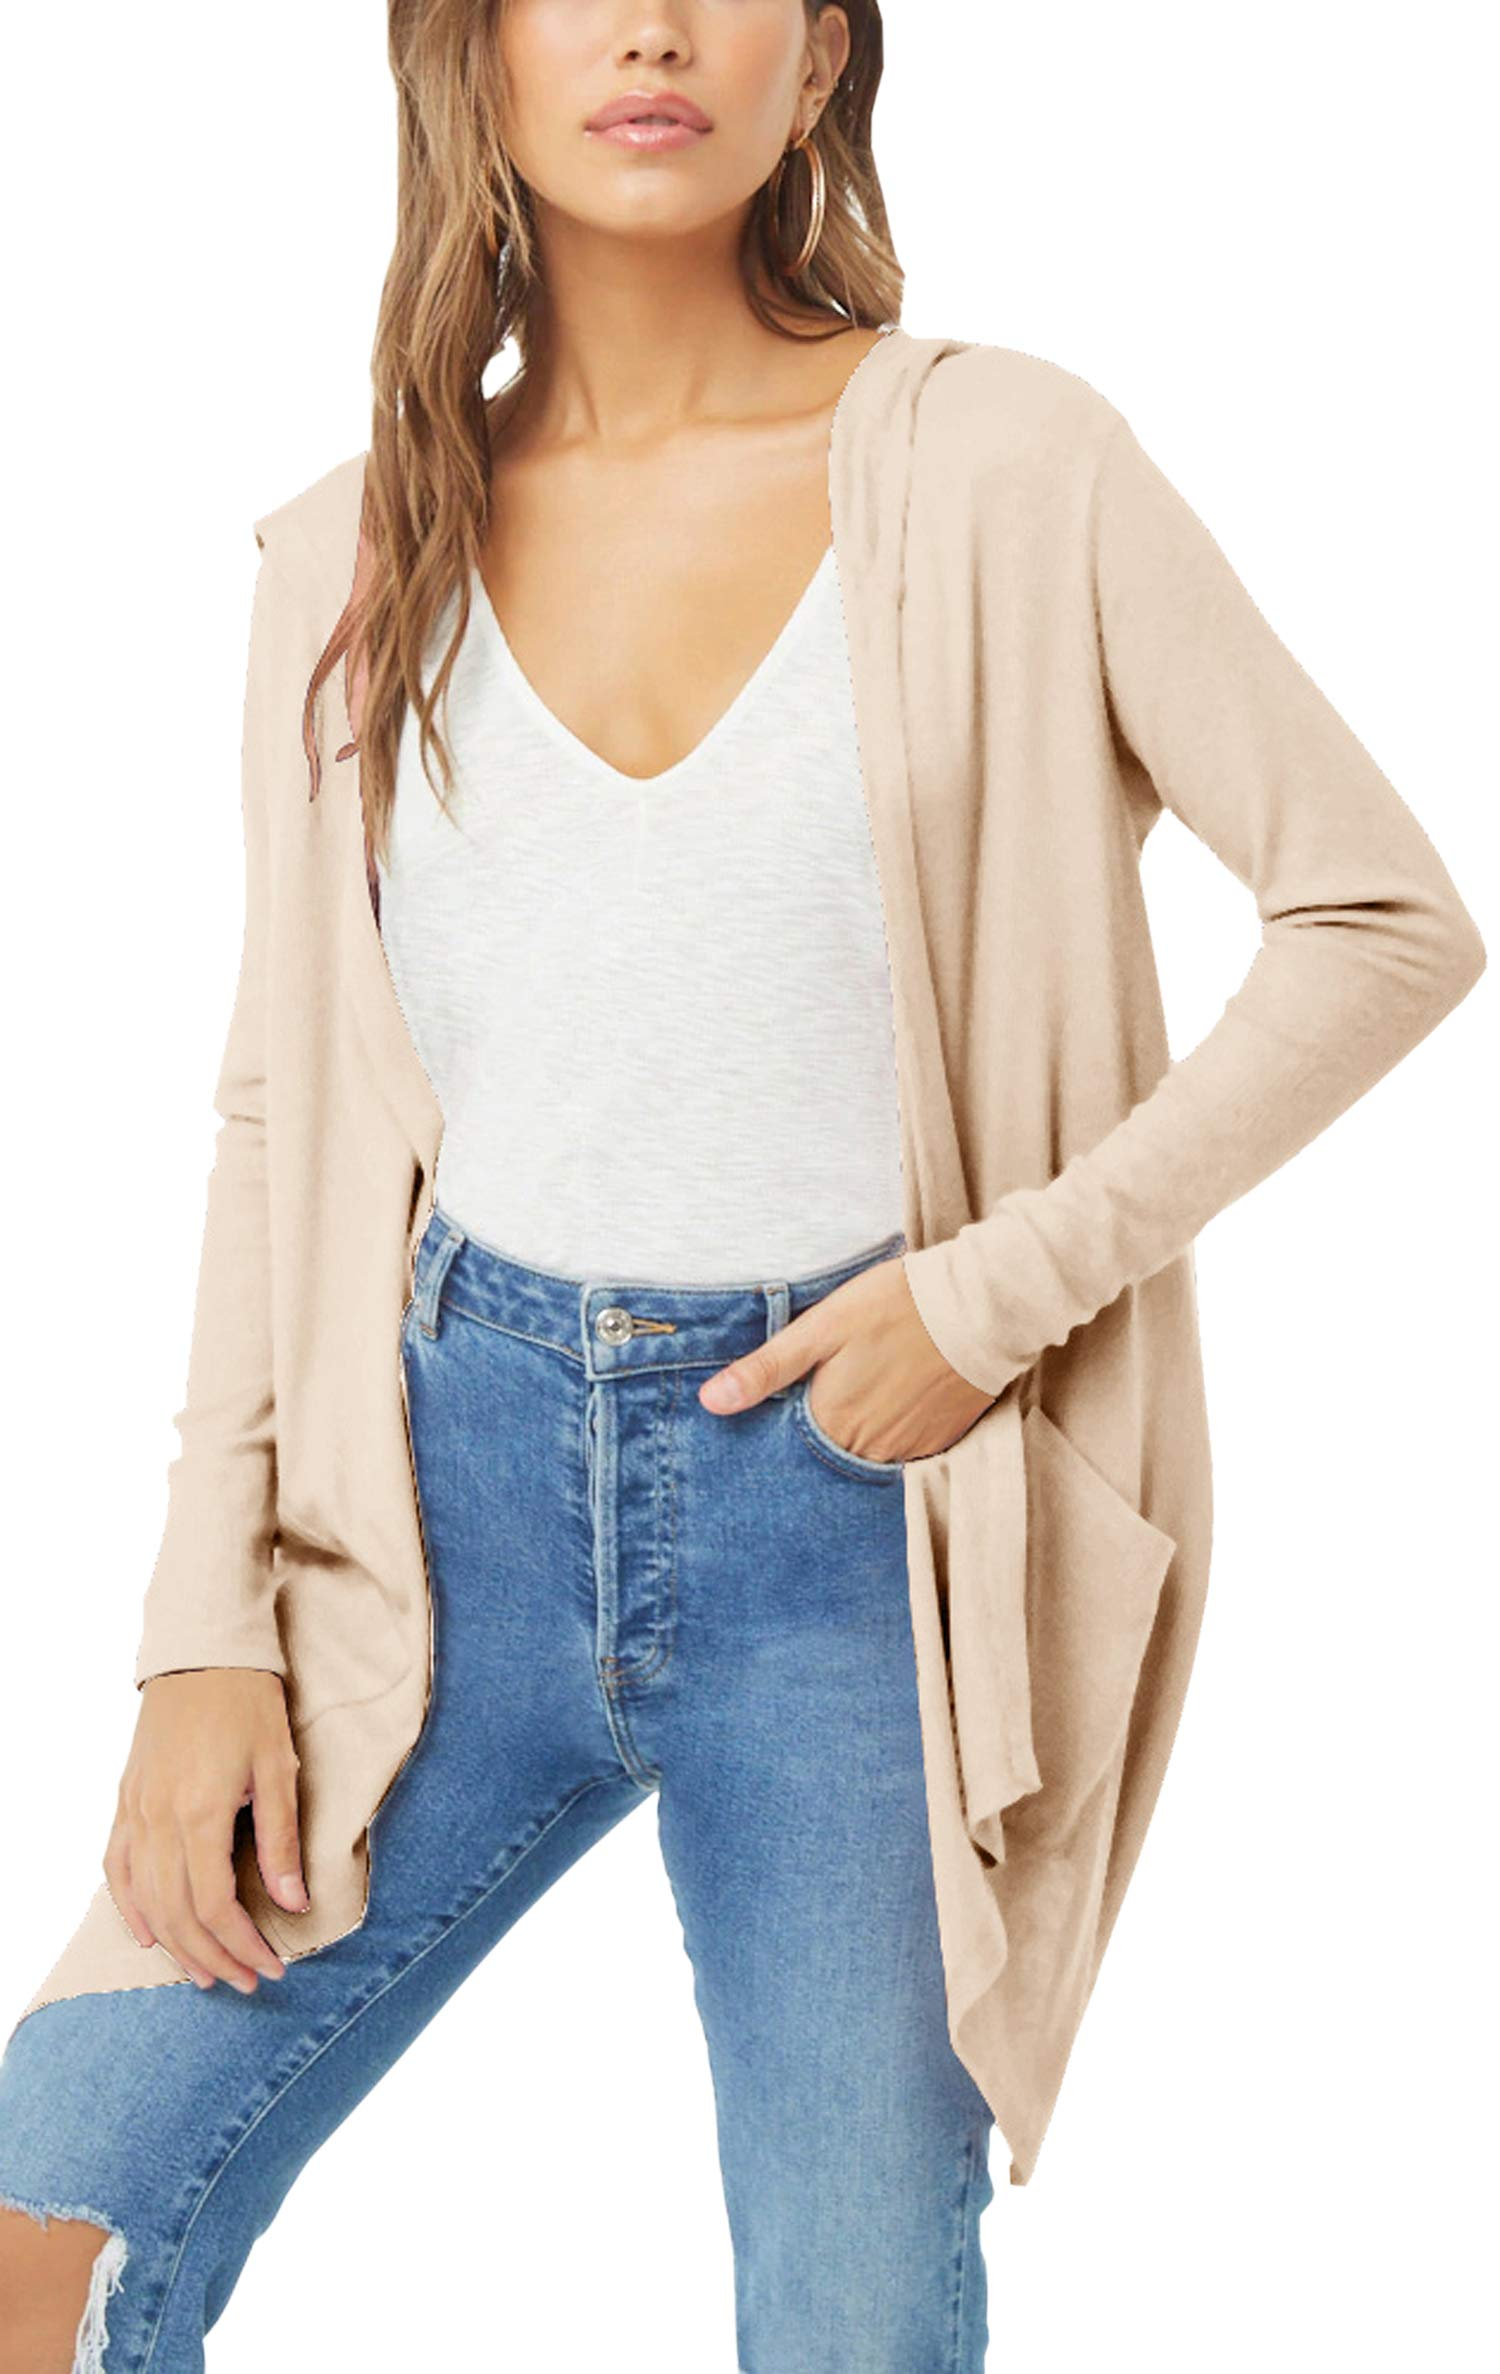 Hibluco Women's Casual Irregular Open Front Cardigans with Hoodie with Pockets